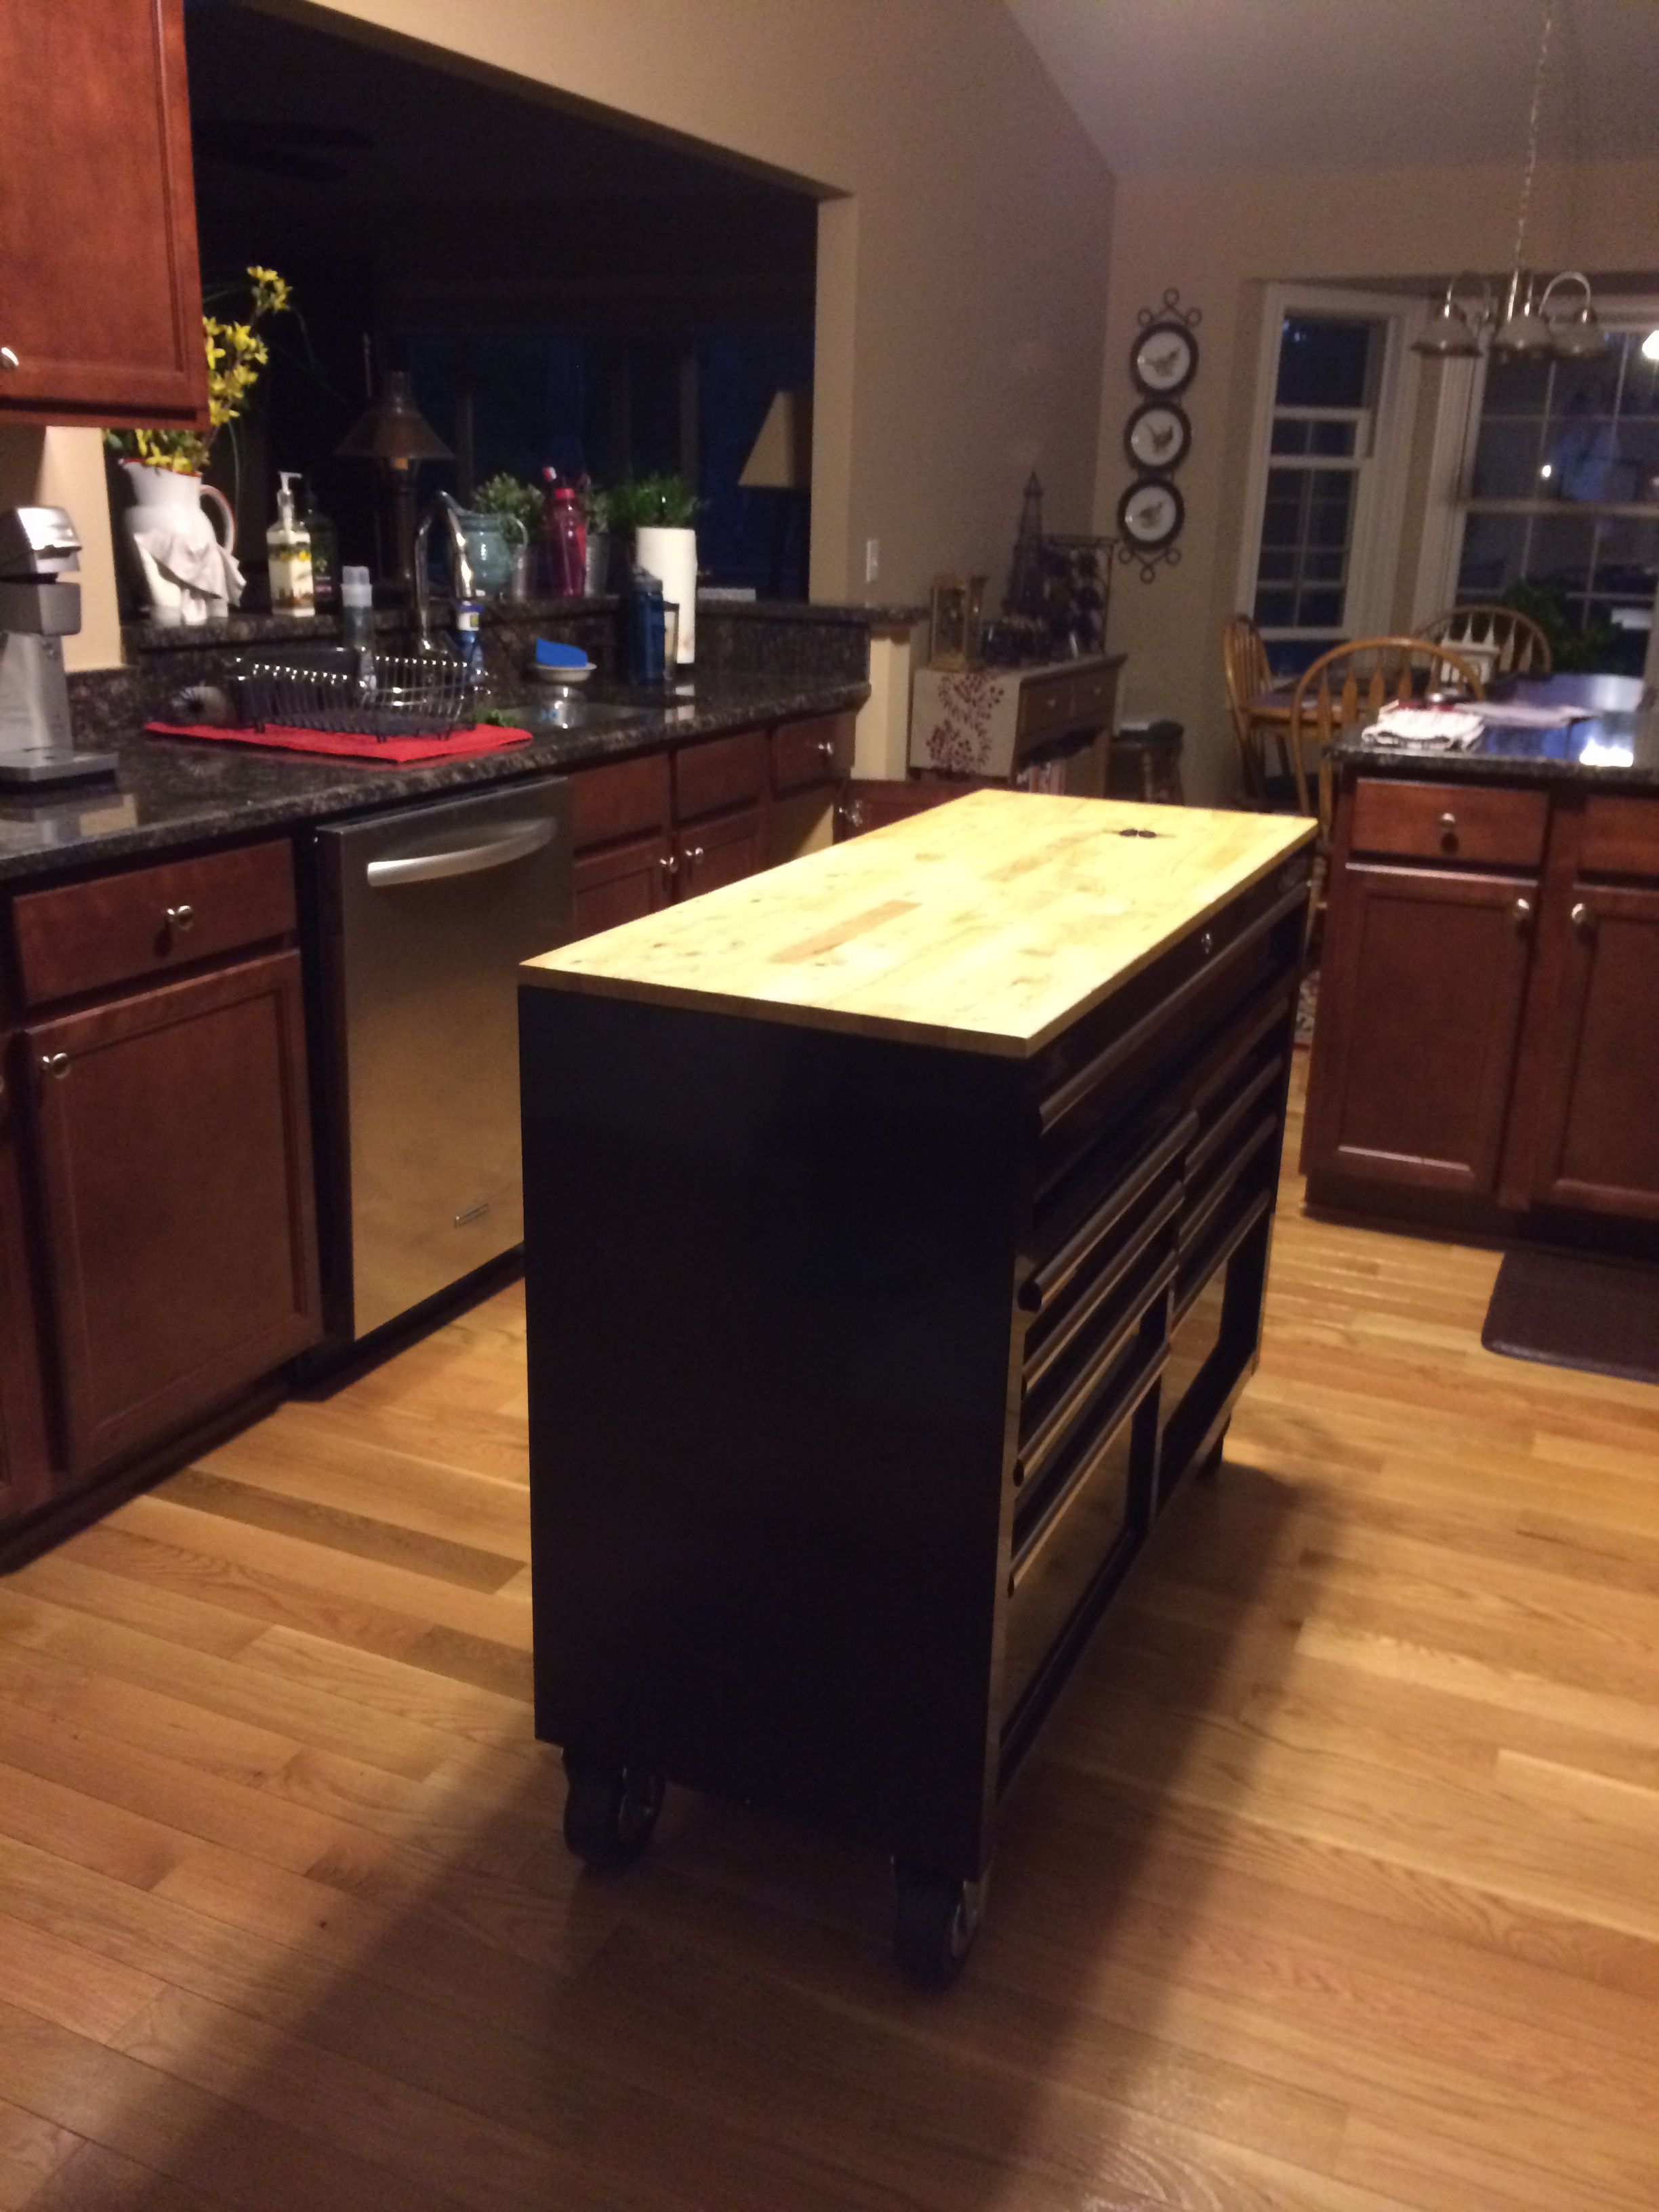 A black steel tool chest as a kitchen island. Awesome!